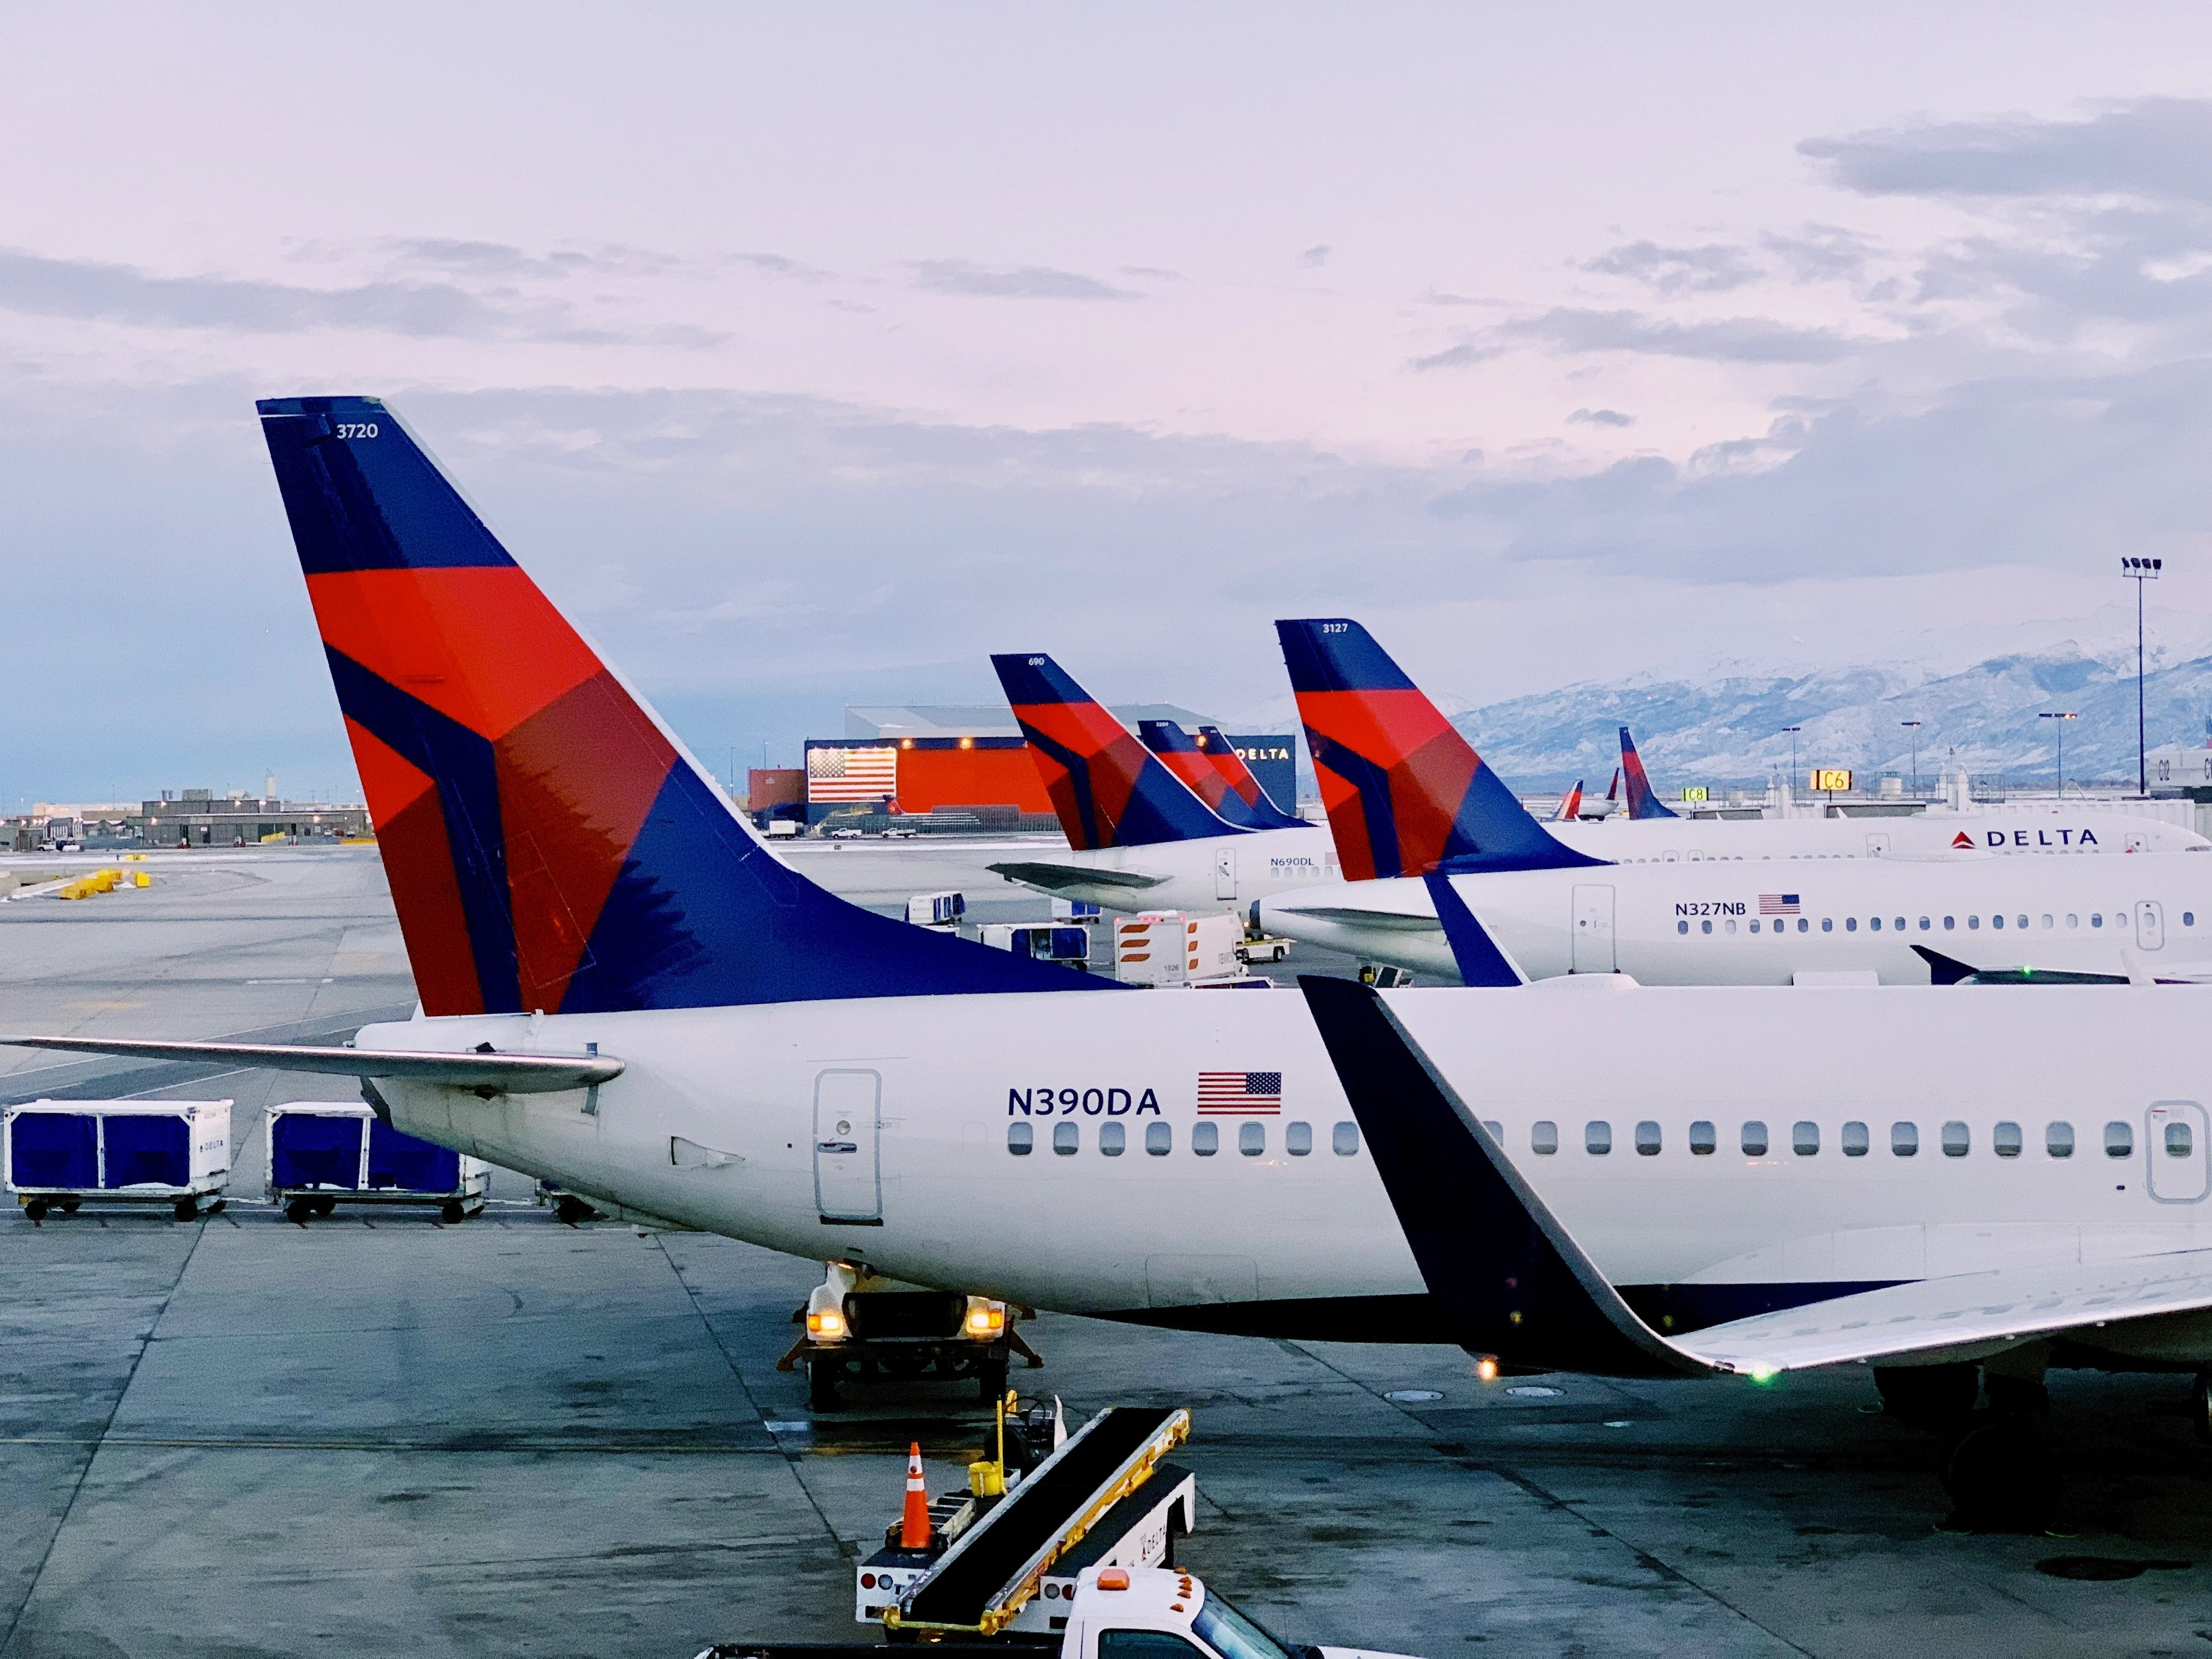 Delta to emerge as 'smaller' airline with more modern fleet post crisis